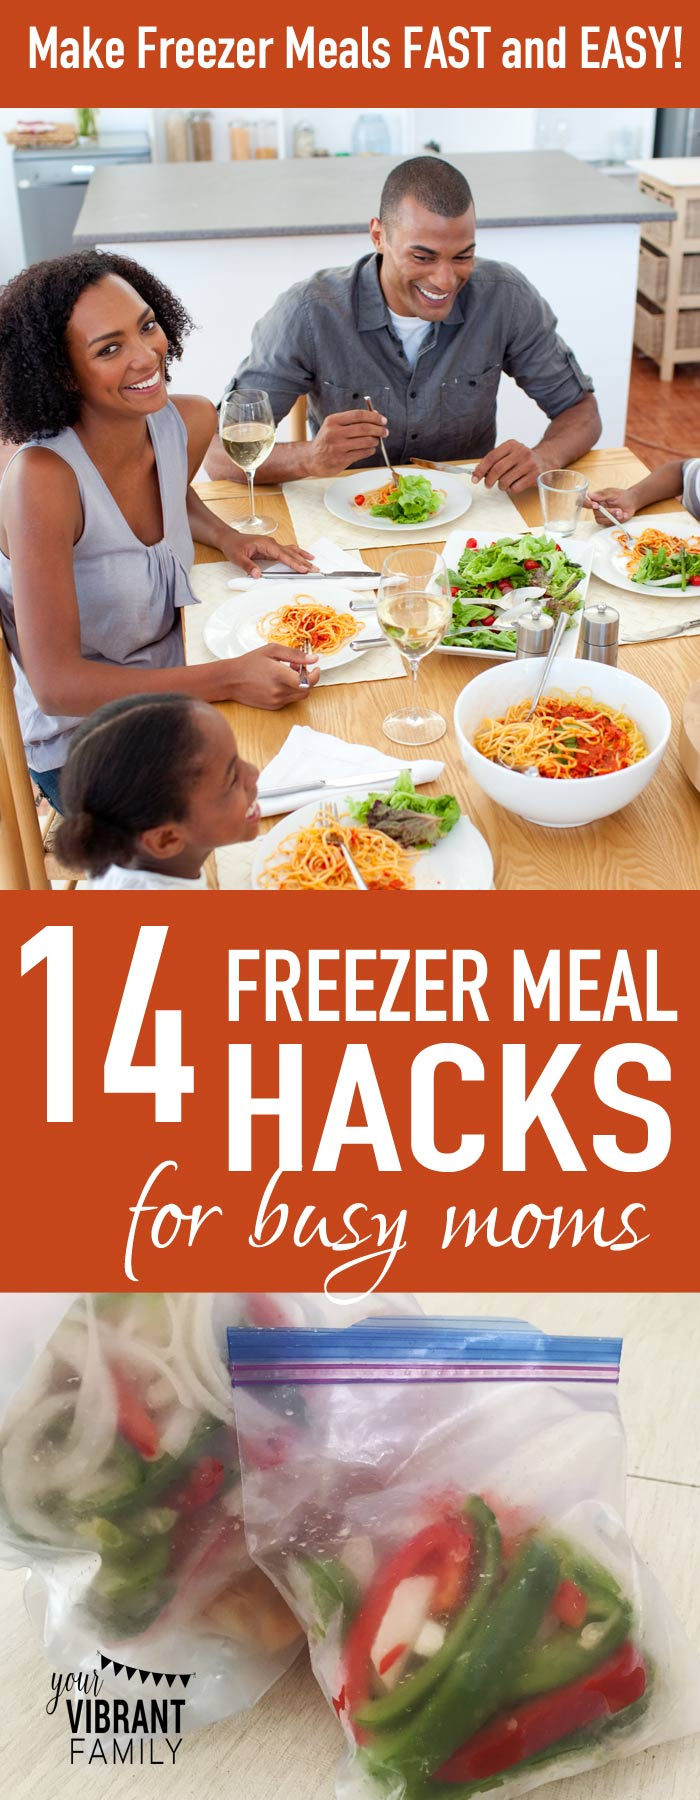 Freezer meals are a LIFESAVER for busy moms. Get 14 amazing tips from a freezer meal making expert on how to make them fast and easy! I learned so much here from her Freezer Meals 101 course, and you can too! For example, Hack #6 is so simple, but it totally blew my mind...